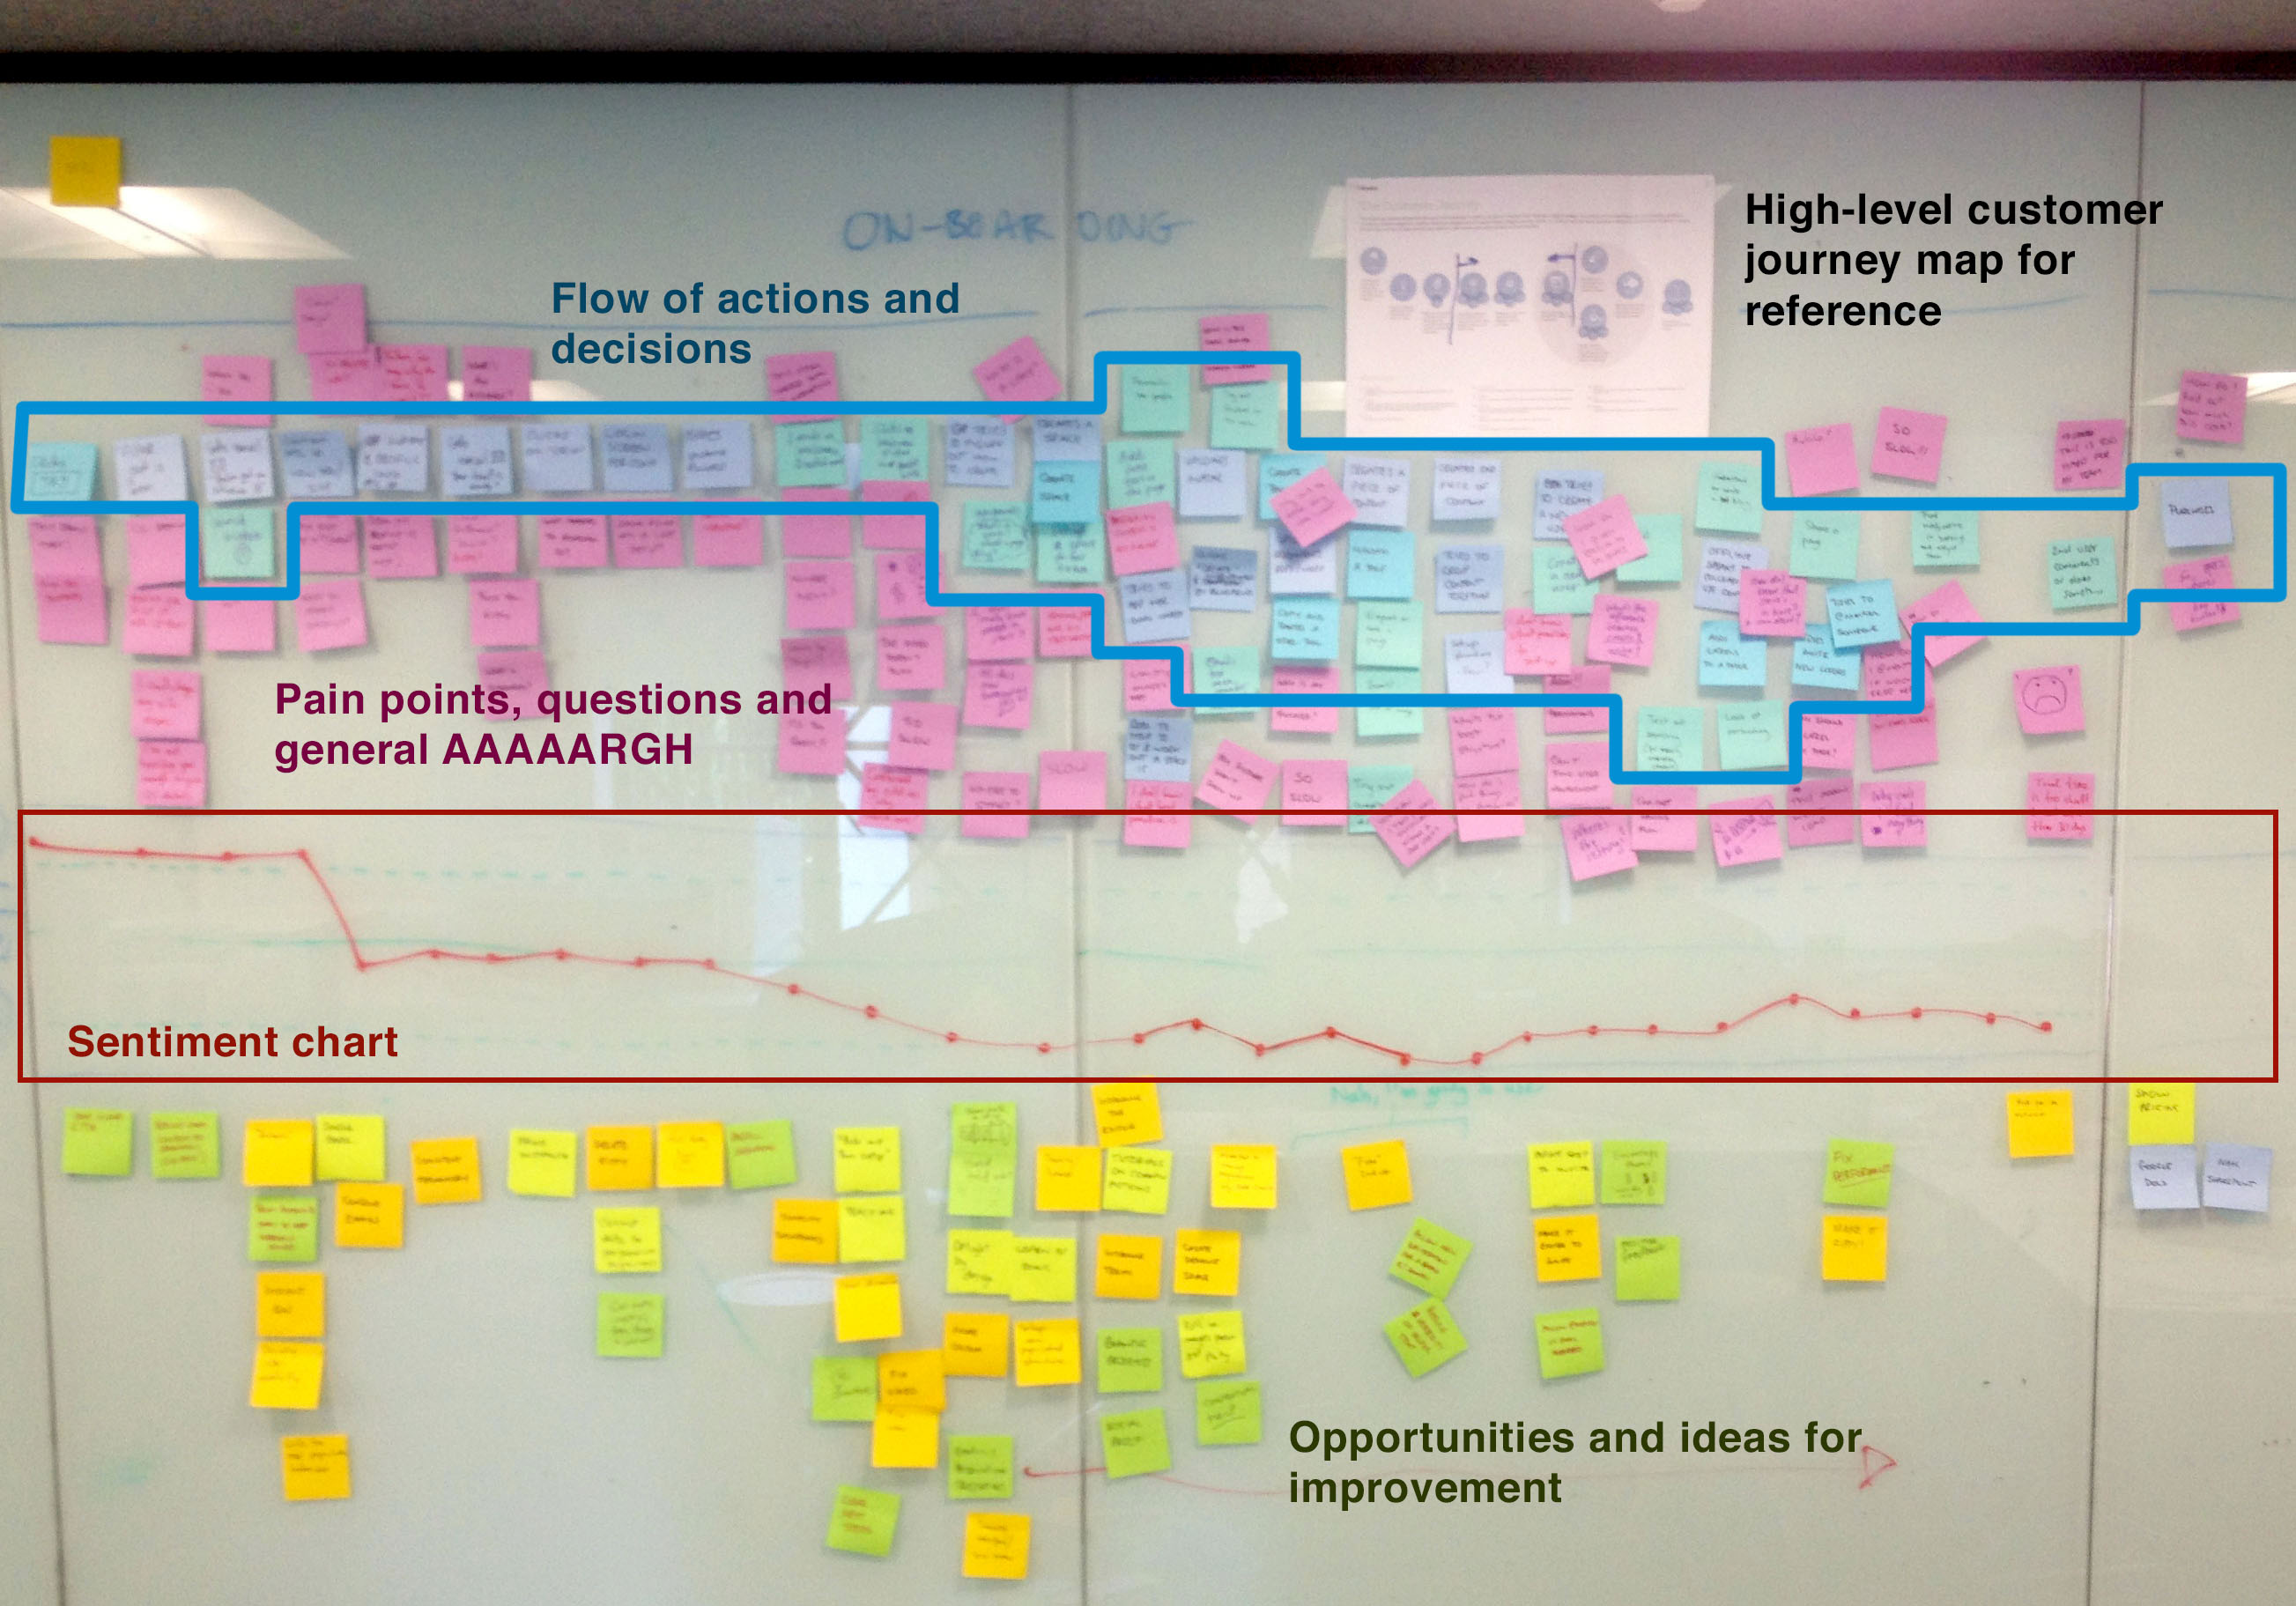 An example user journey map.